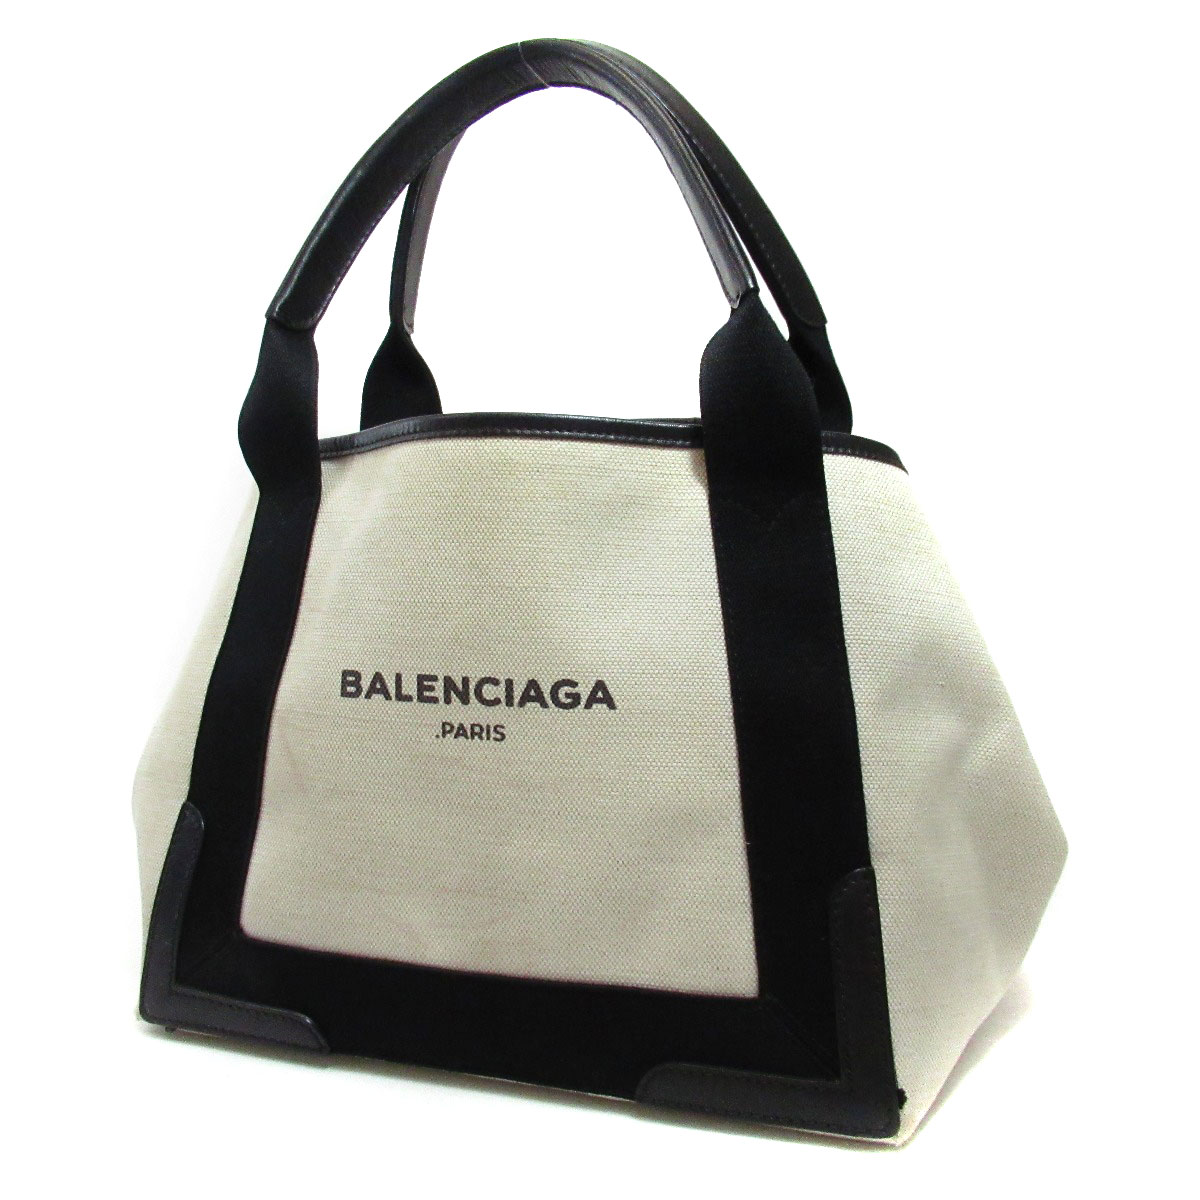 db8364852b8e BALENCIAGA  Balenciaga  Tote Bag Canvas Women s ー The best ...